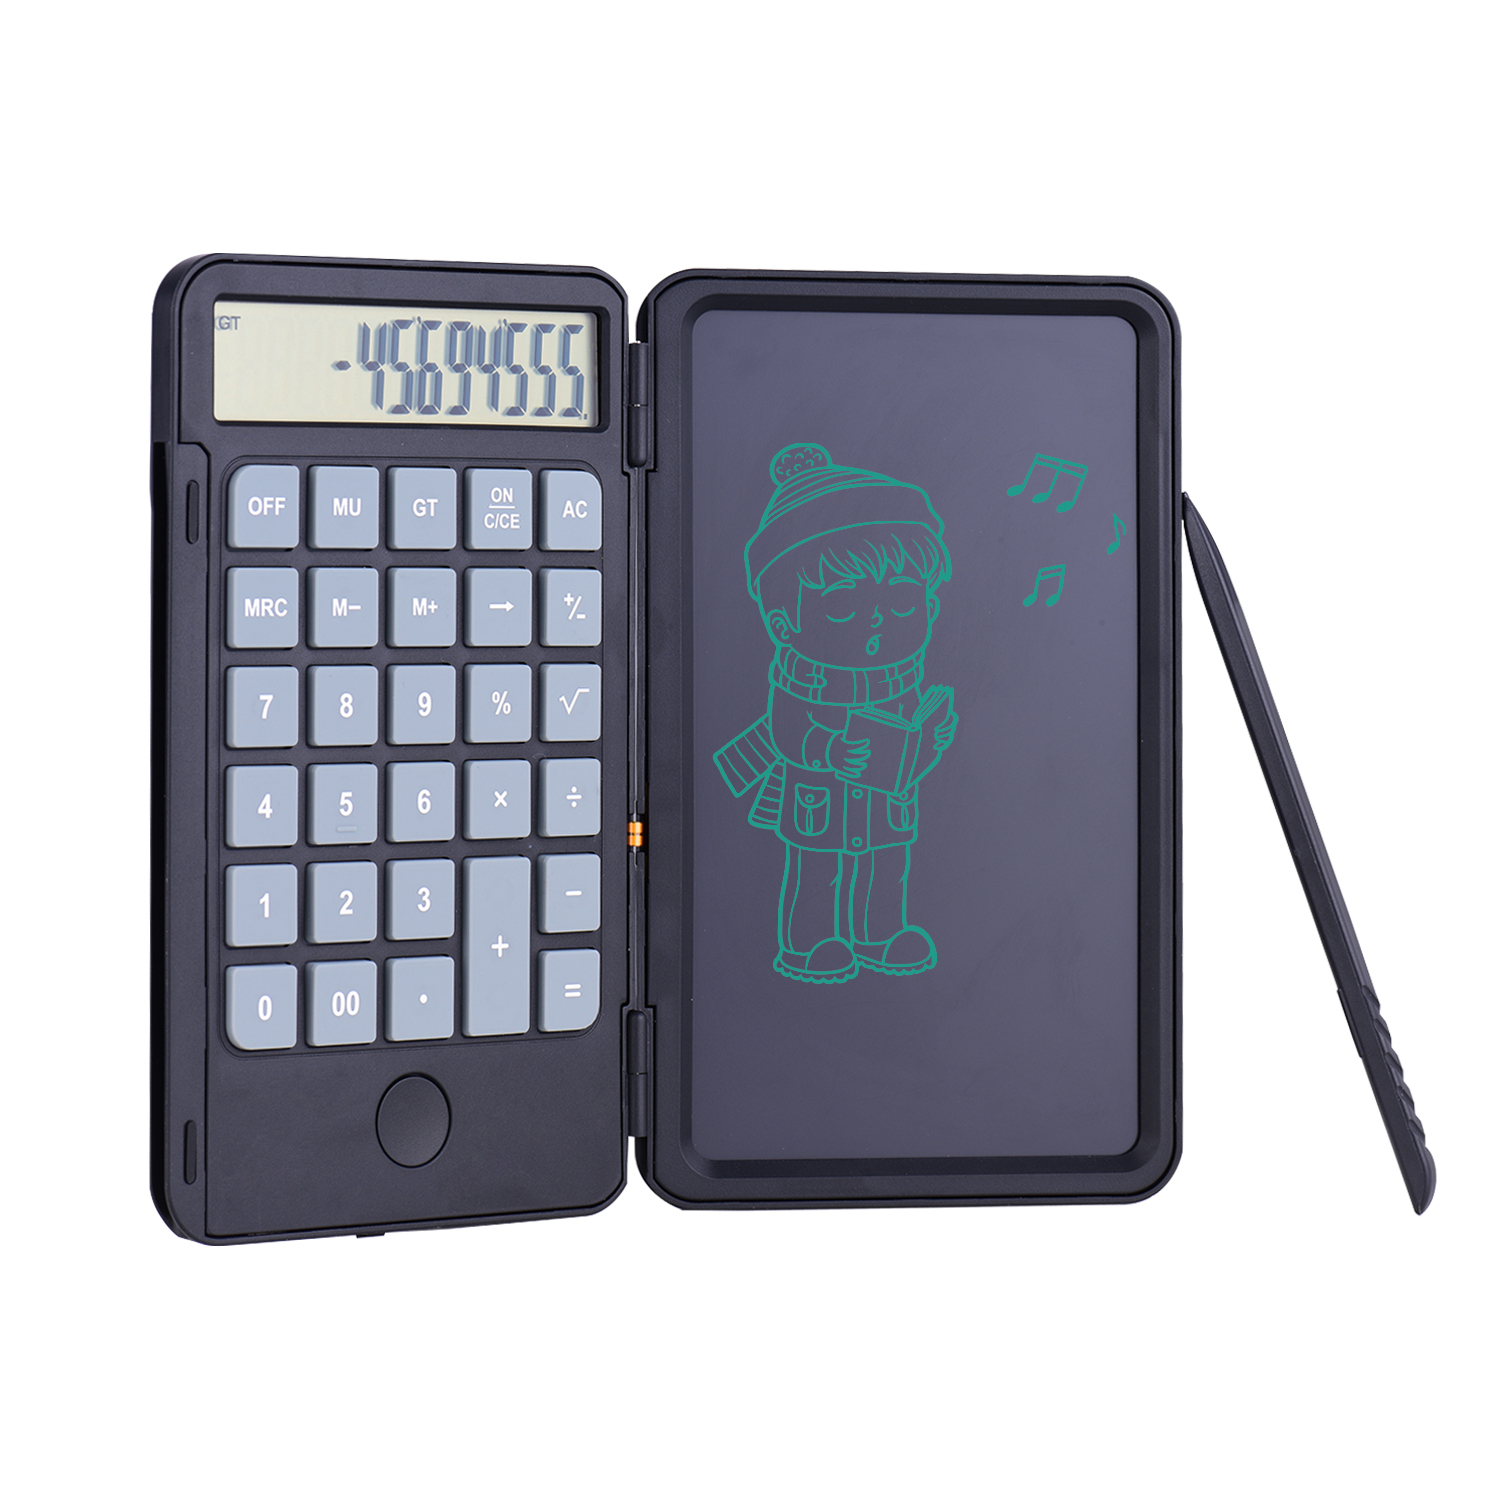 Aibecy Portable Calculator & LCD Writing Tablet Digital Drawing Pad 12 Digits Display with Stylus Pen Erase Button Lock Function